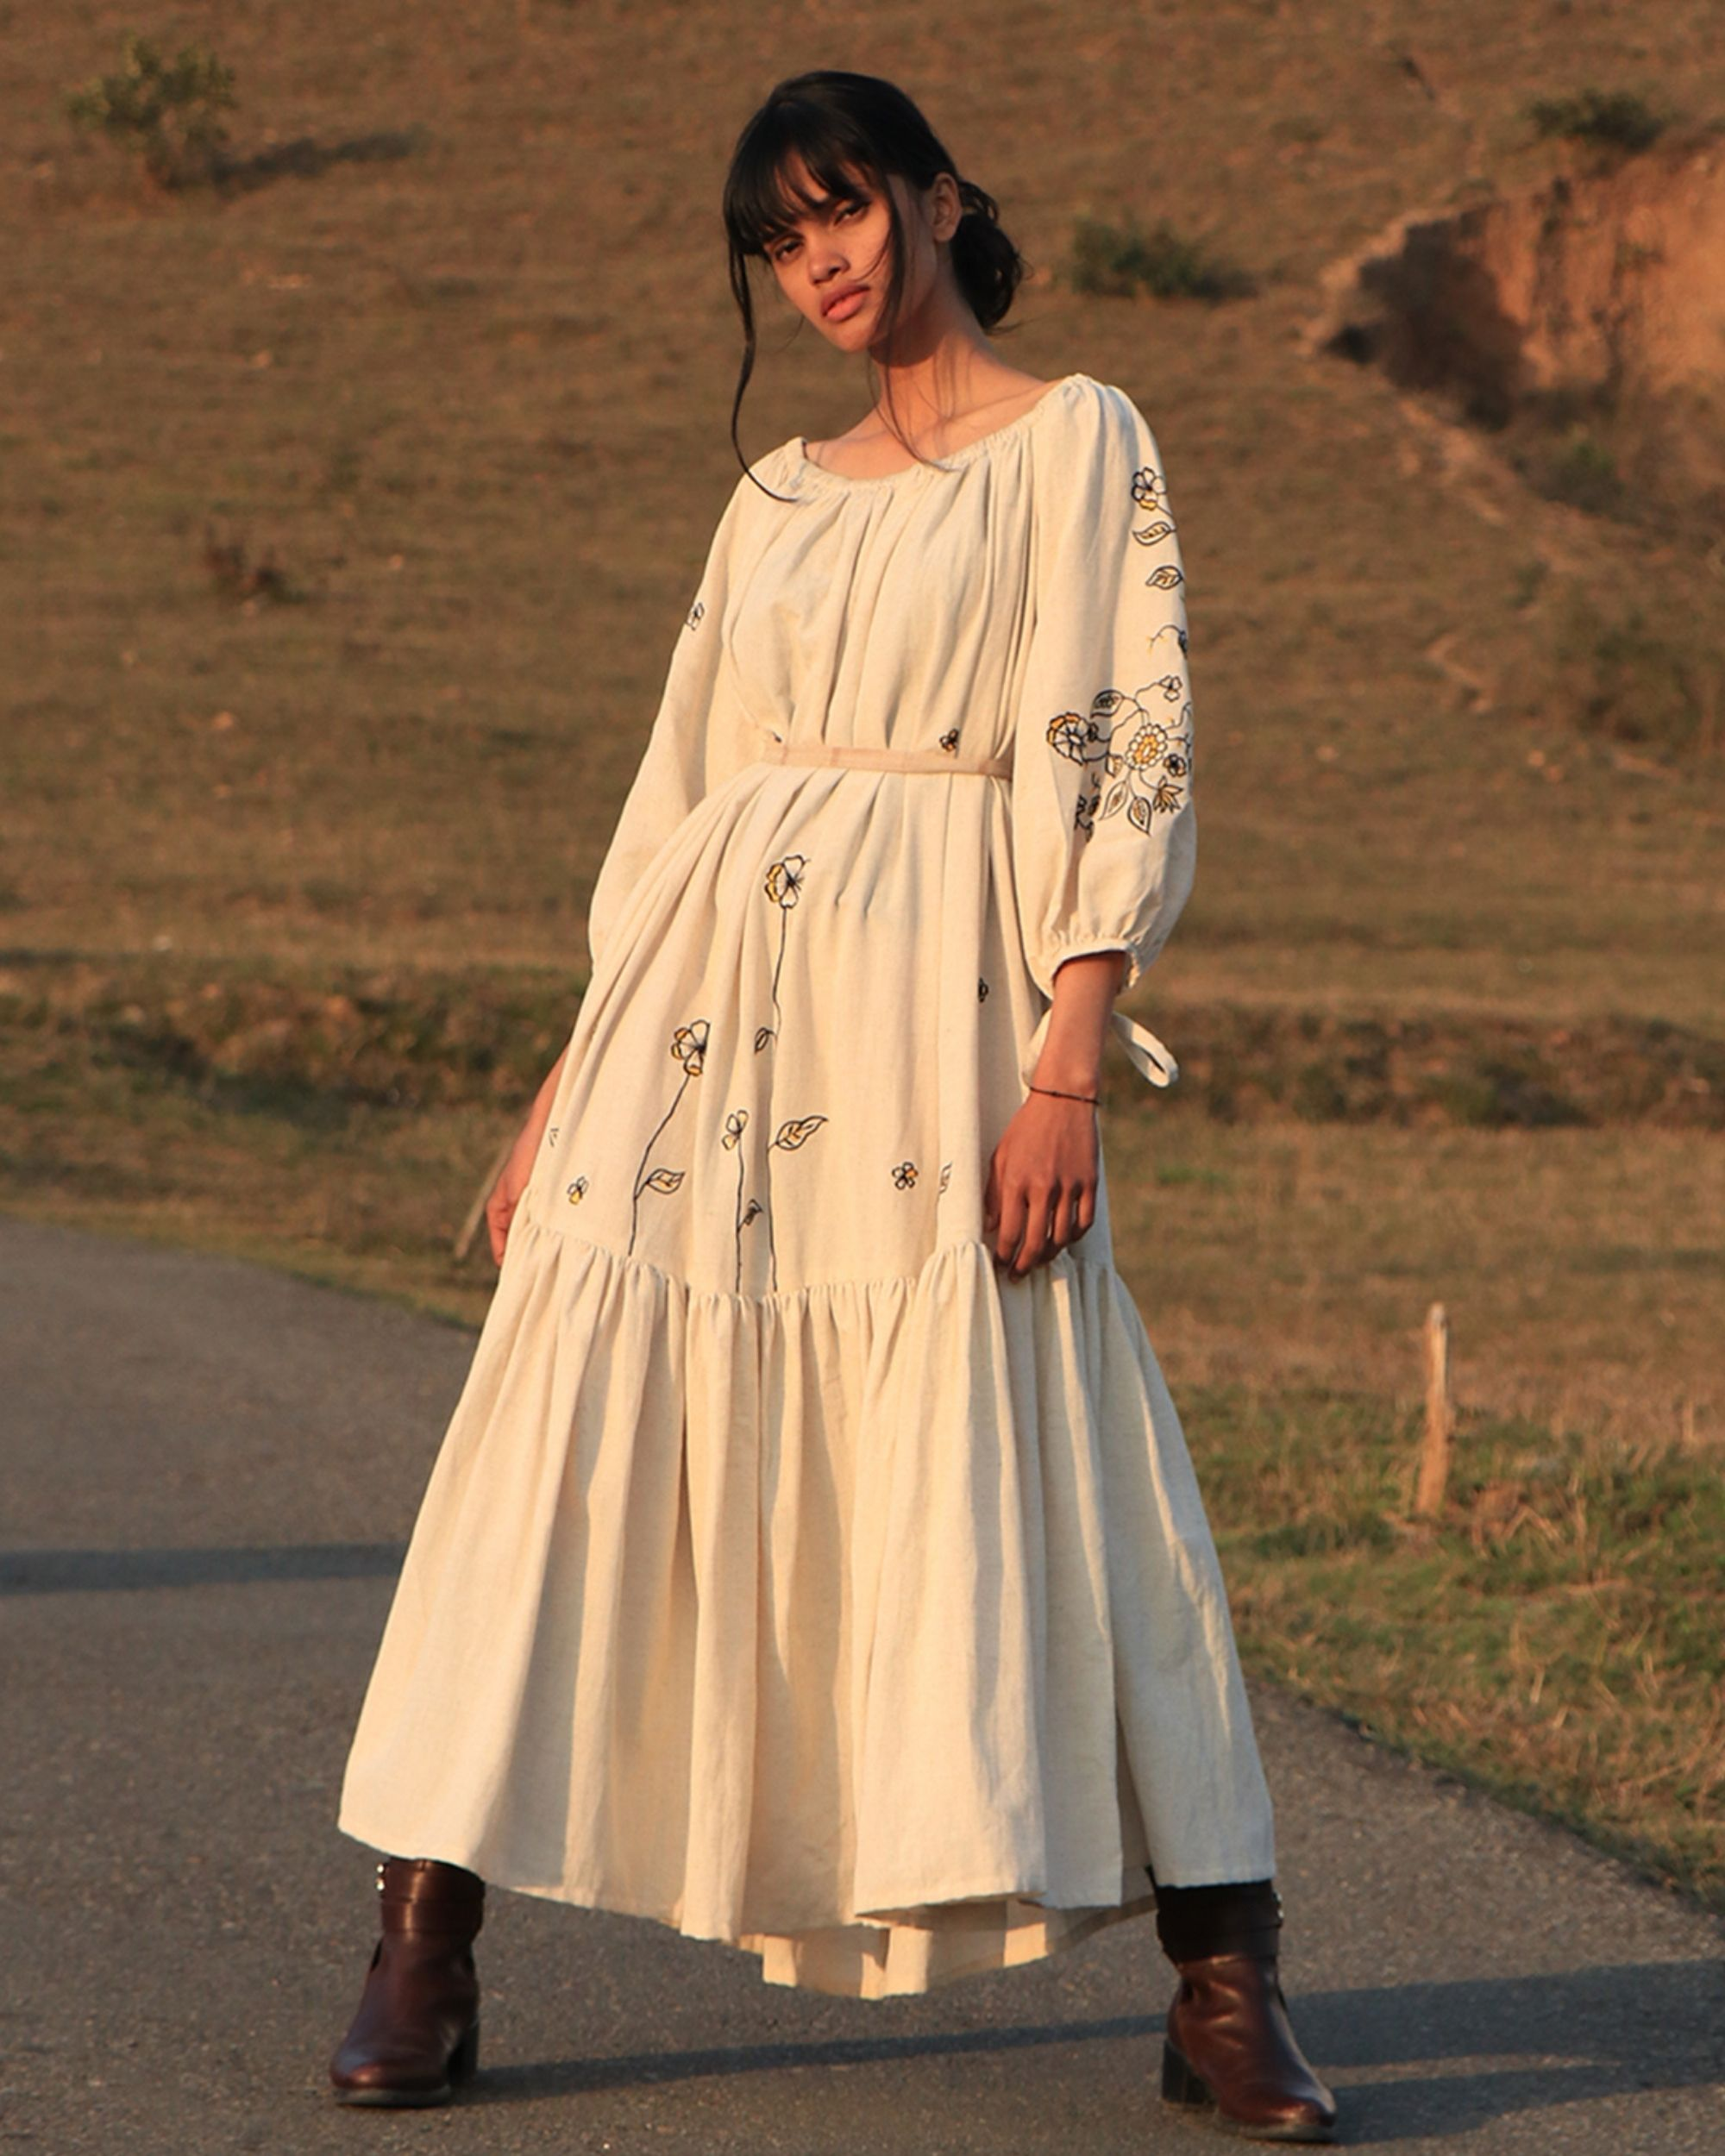 Off white tiered dress